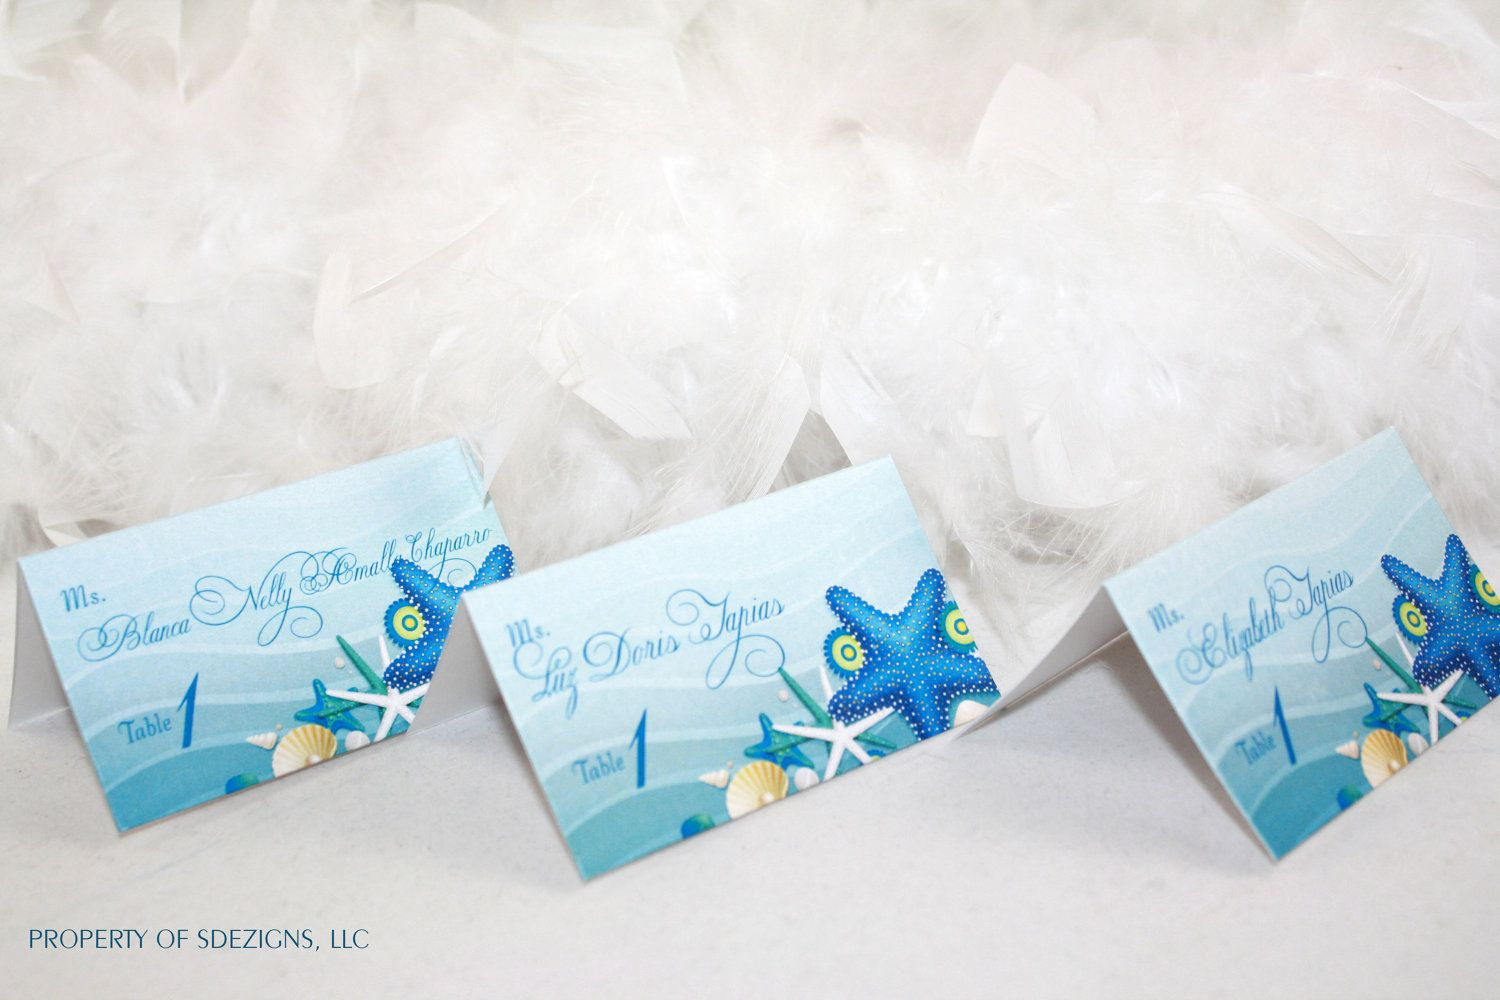 Escort cards place cards sea shells and starfish destination escort cards place cards sea shells and starfish destination beach wedding design jeuxipadfo Choice Image